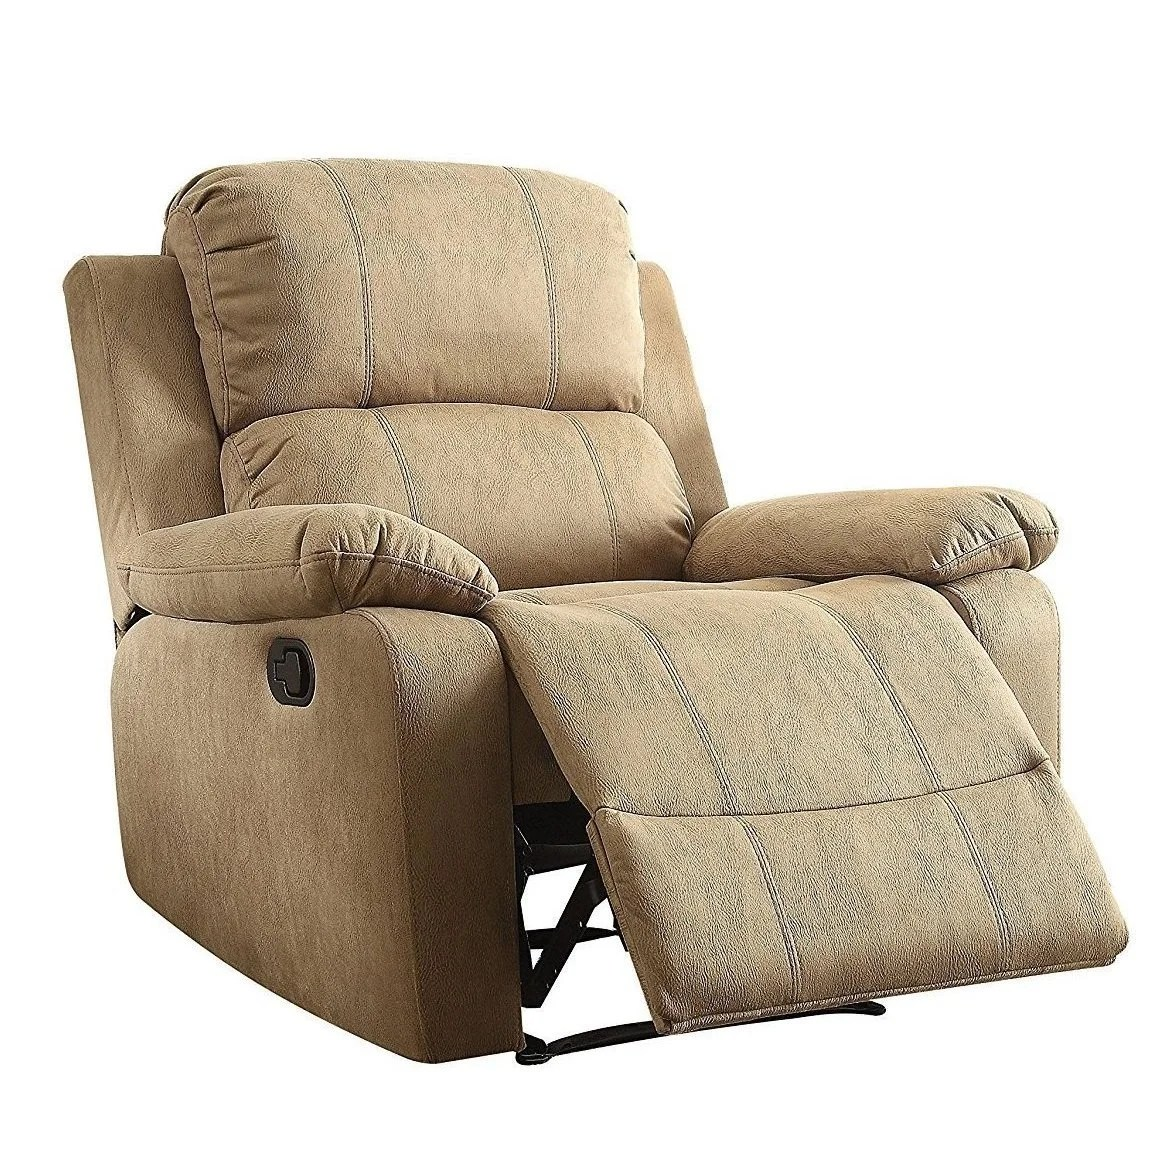 Recliner Pillow Details About Q Max Bina Brown Memory Foam Pillow Top Reclining Arm Chair